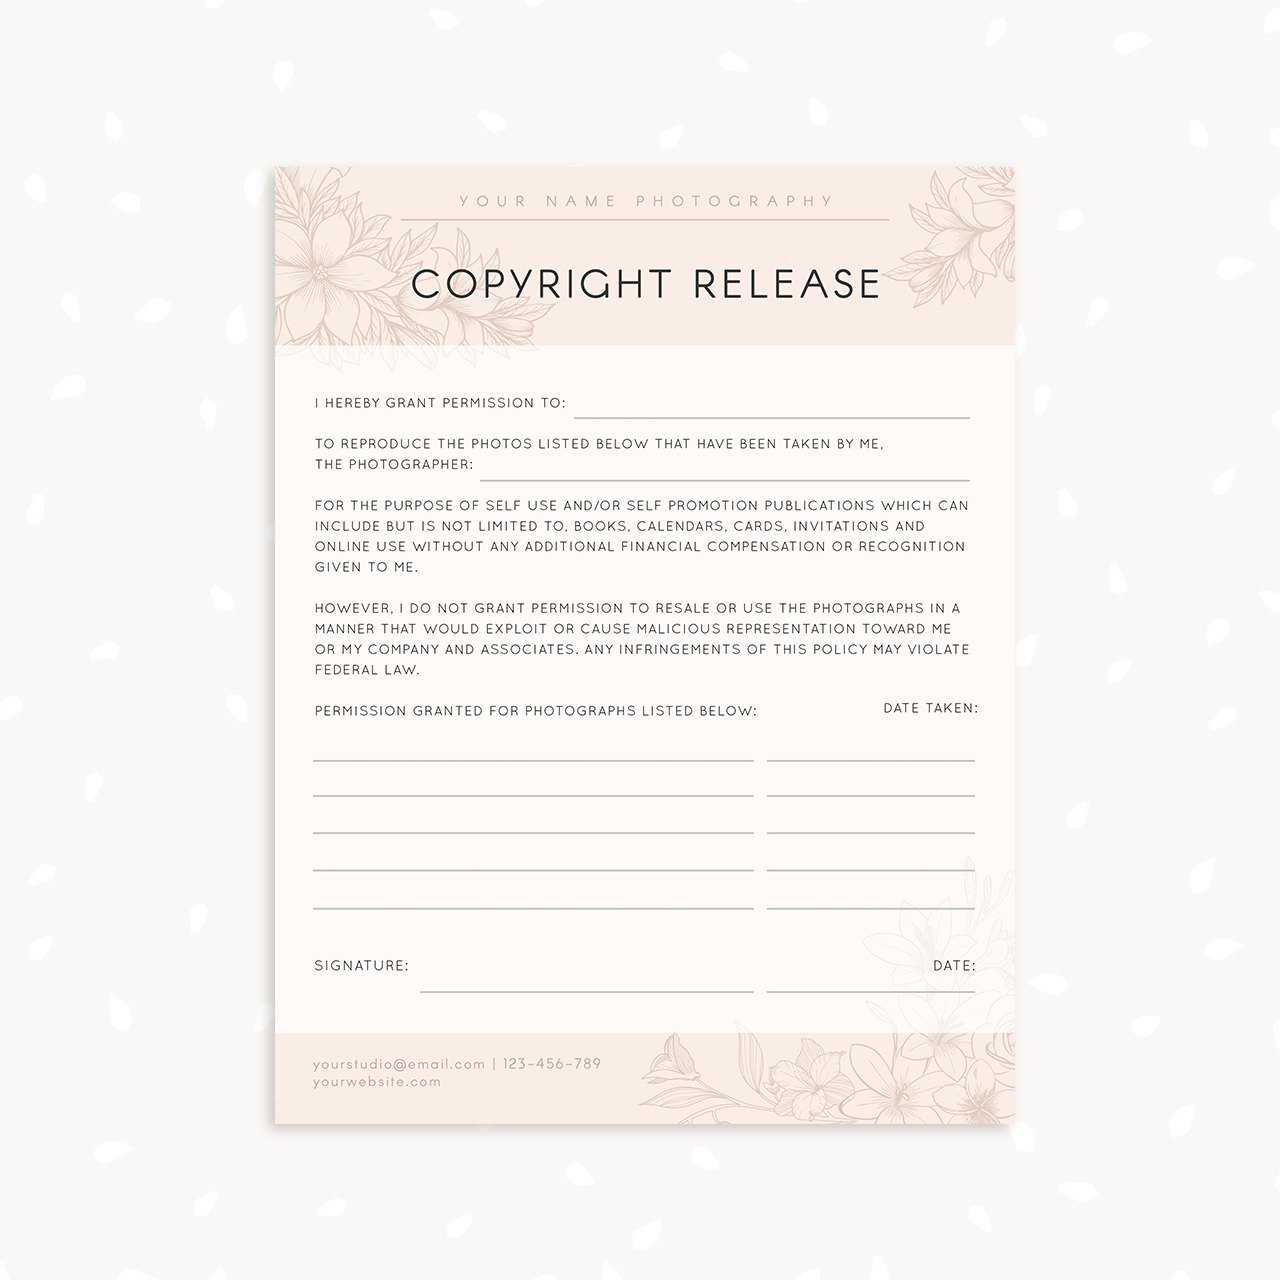 Copyright Release Form Template - Strawberry Kit